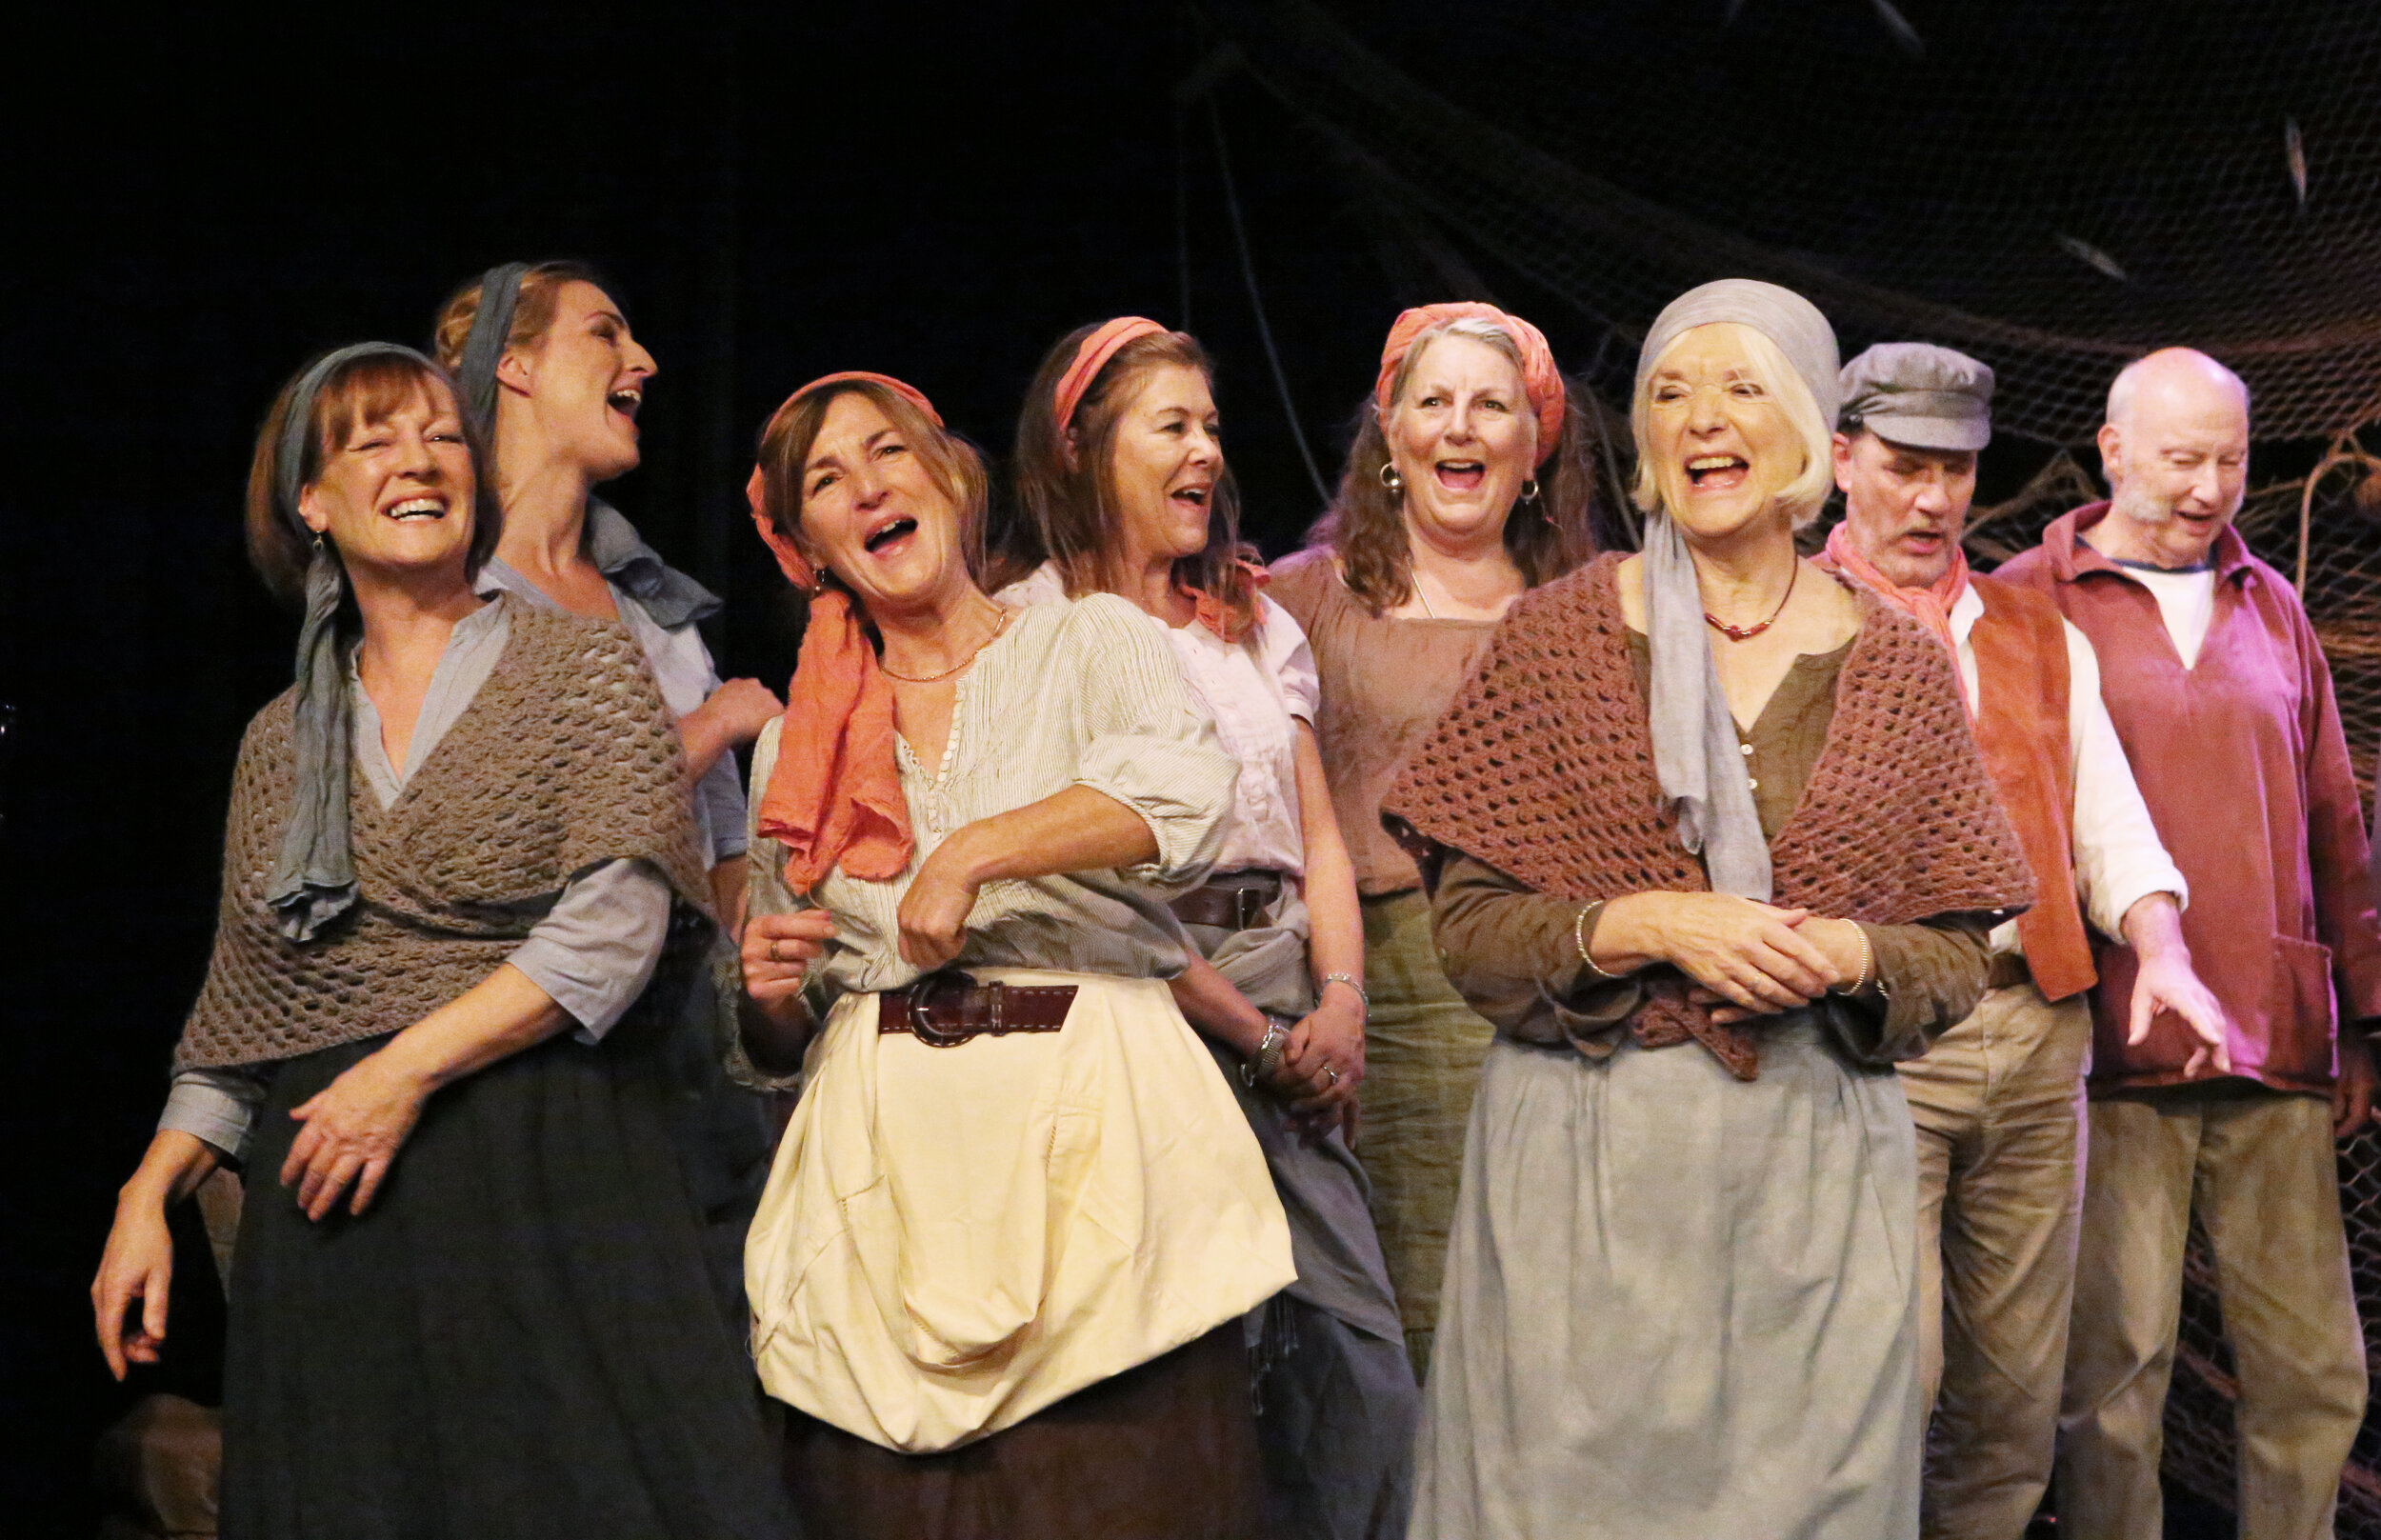 'A Heave-Ho' at the Marine Theatre and Royal Manor 2019